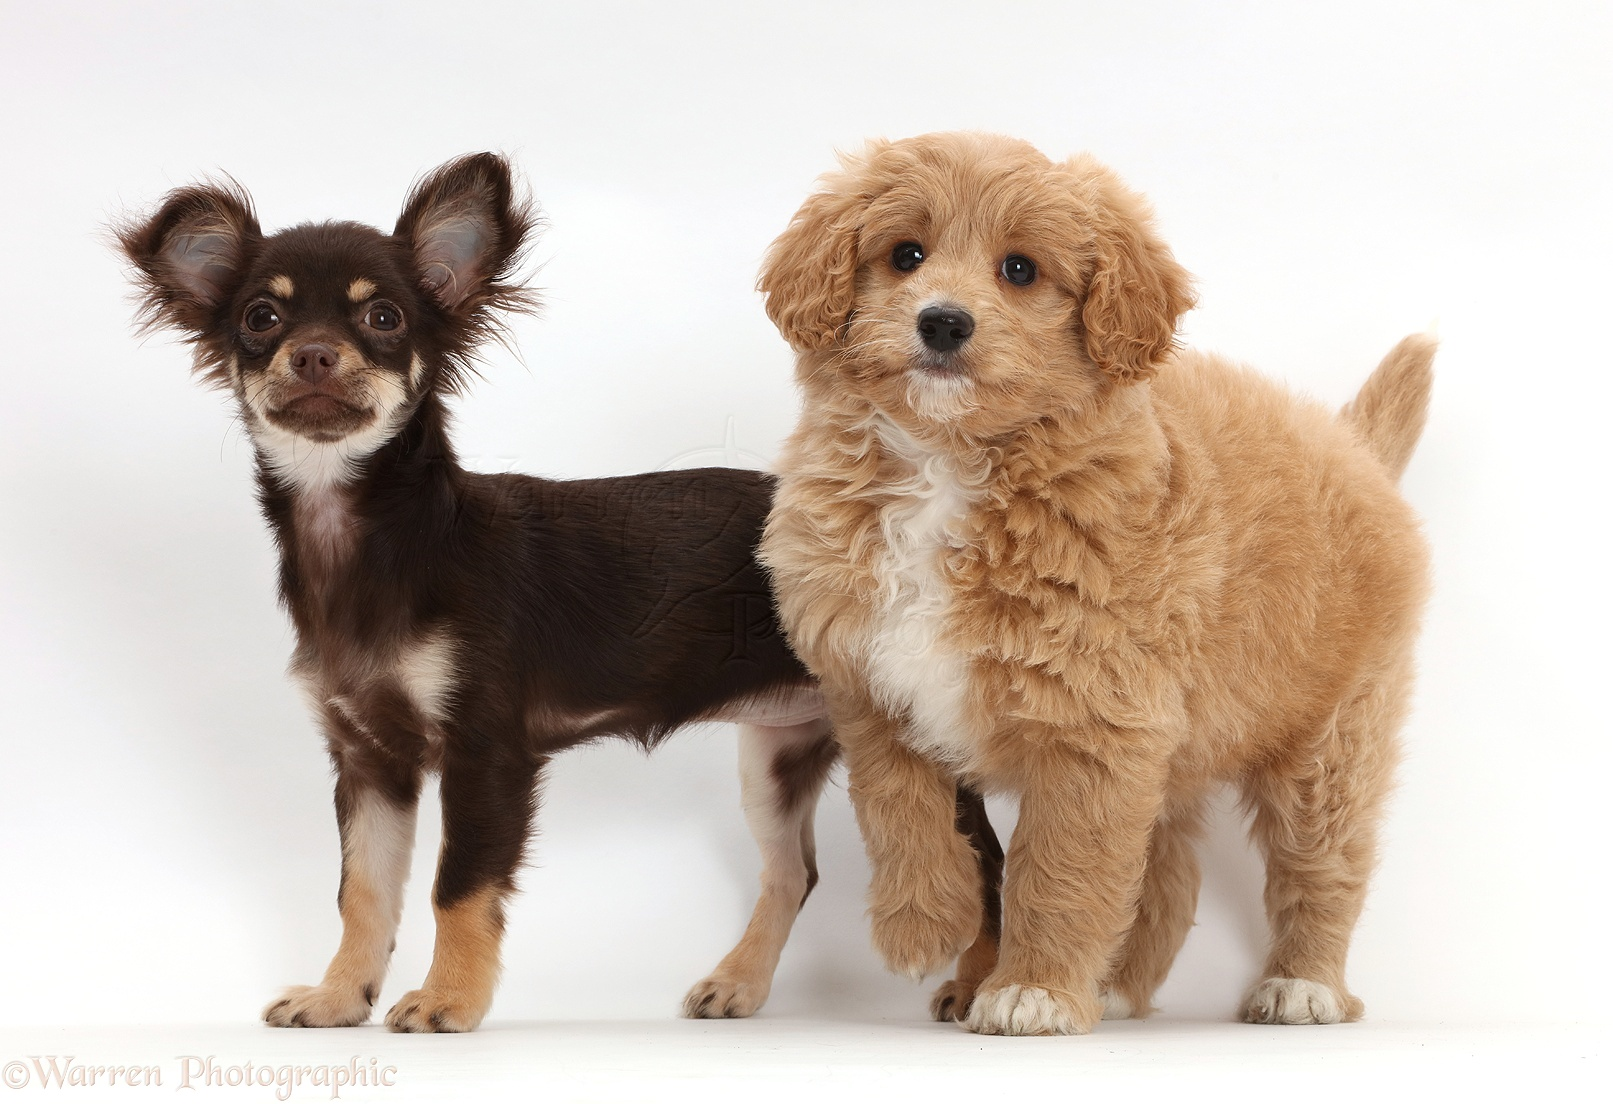 Dogs: Chocolate-and-tan Chihuahua with Cavapoo puppy photo - WP42969